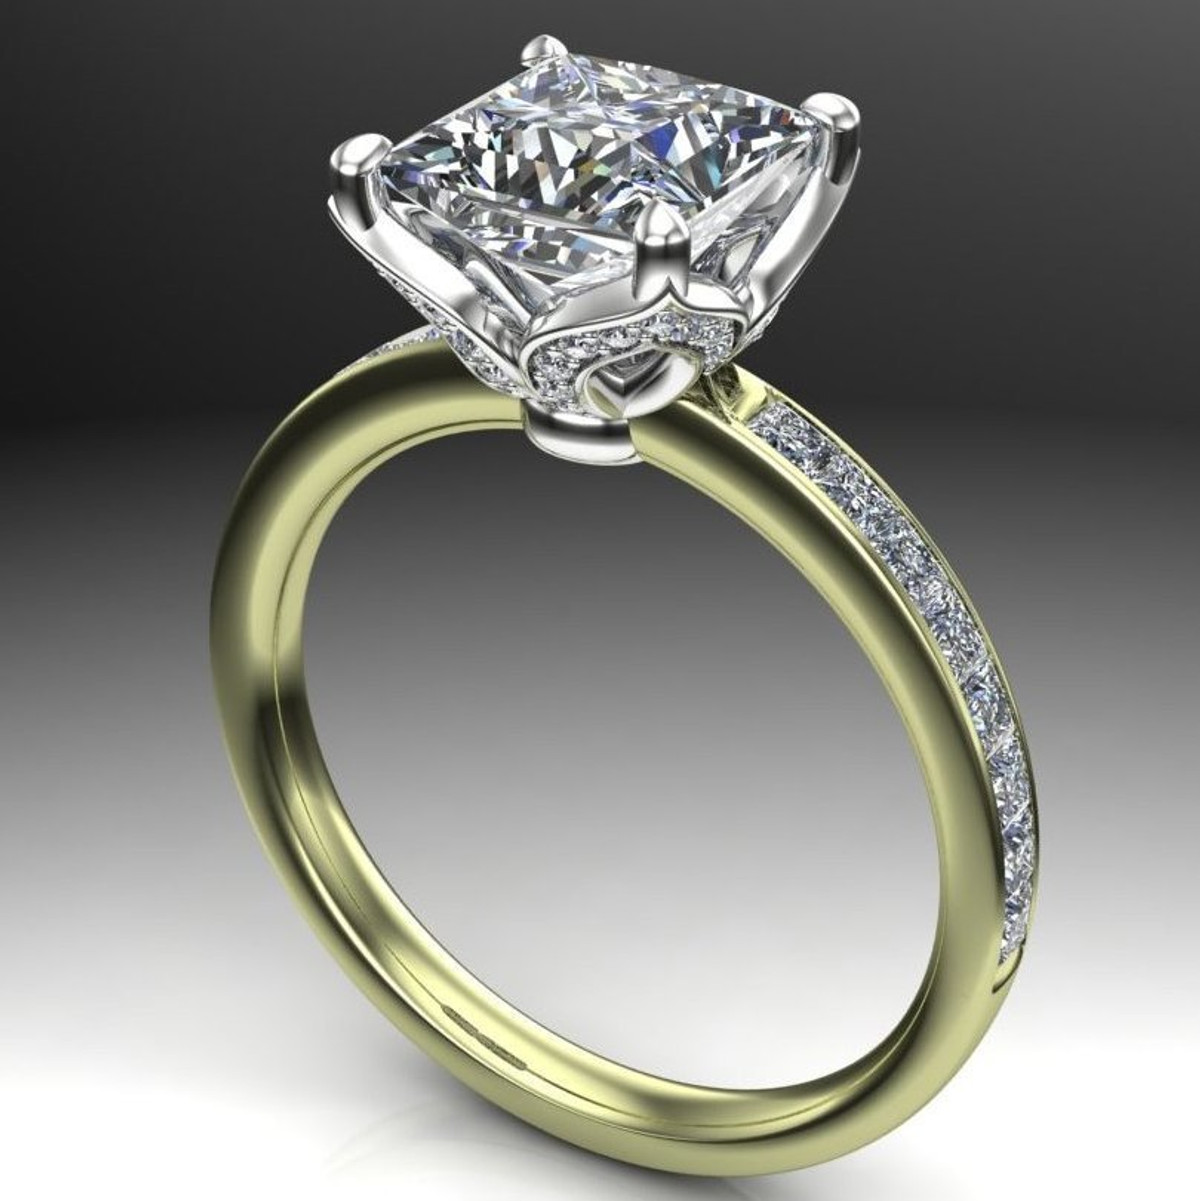 7c940b04e9c6e Fleur | Princess Cut 2 Carat Diamond Engagement Ring